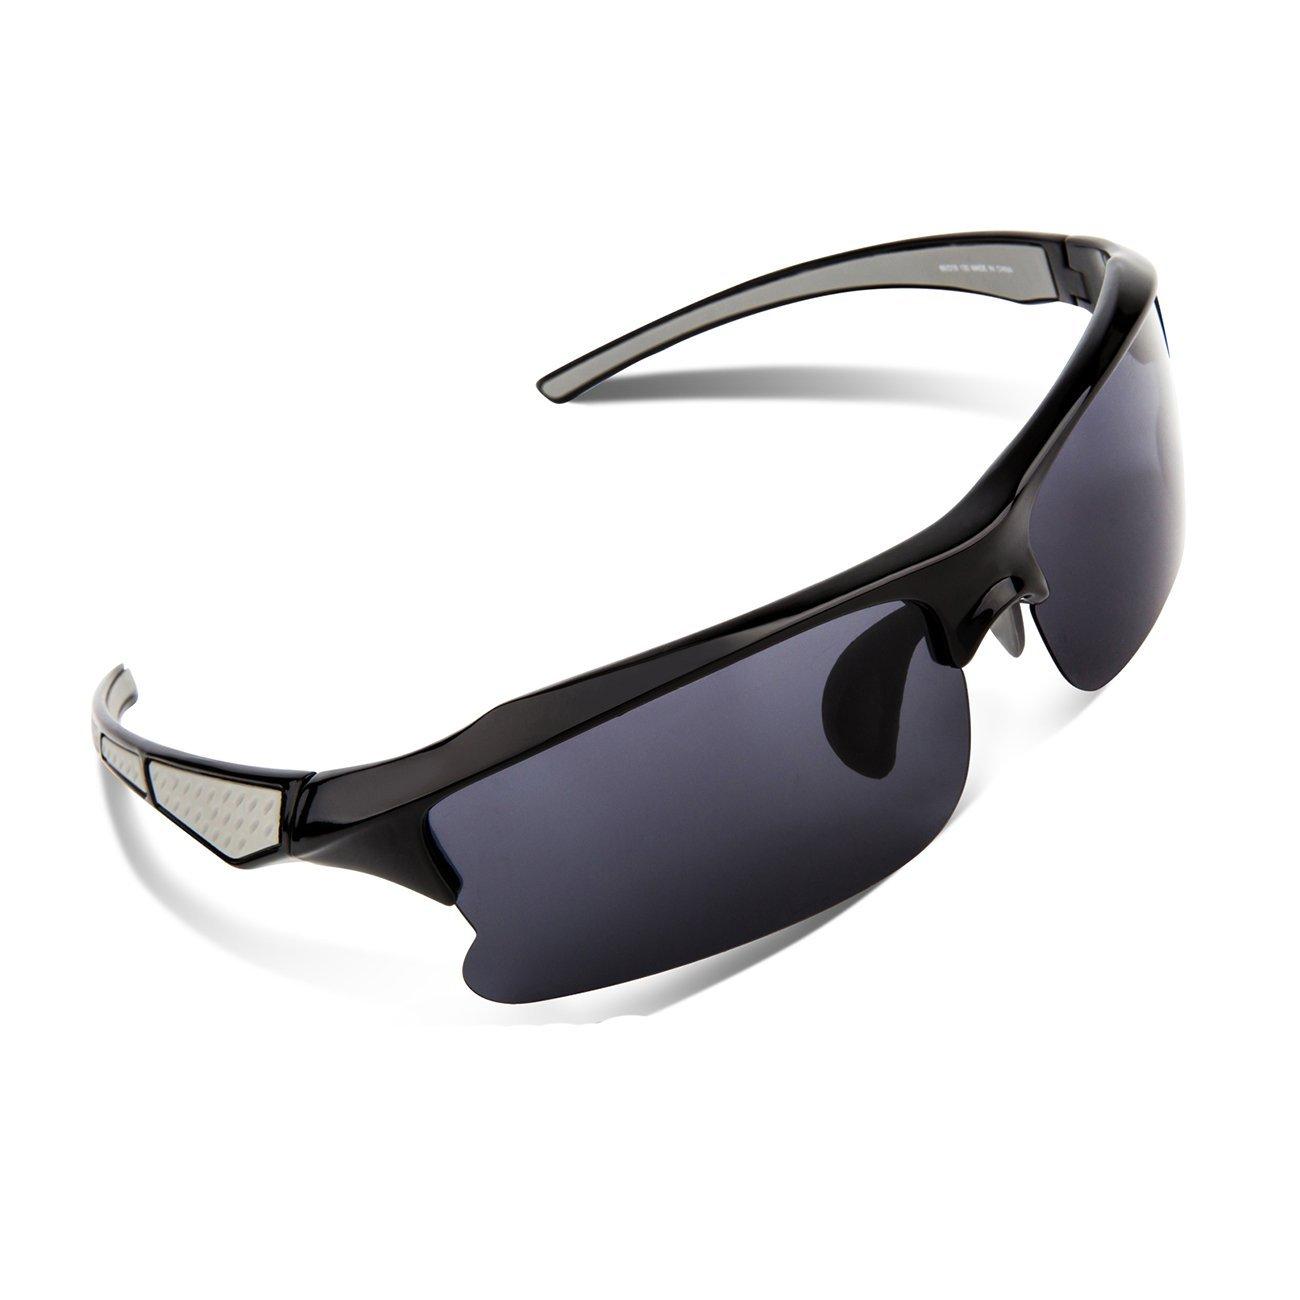 4d01037159 Get Quotations · RIVBOS® RB302 Polarized Sports Glasses Casual Cycling  Sunglasses